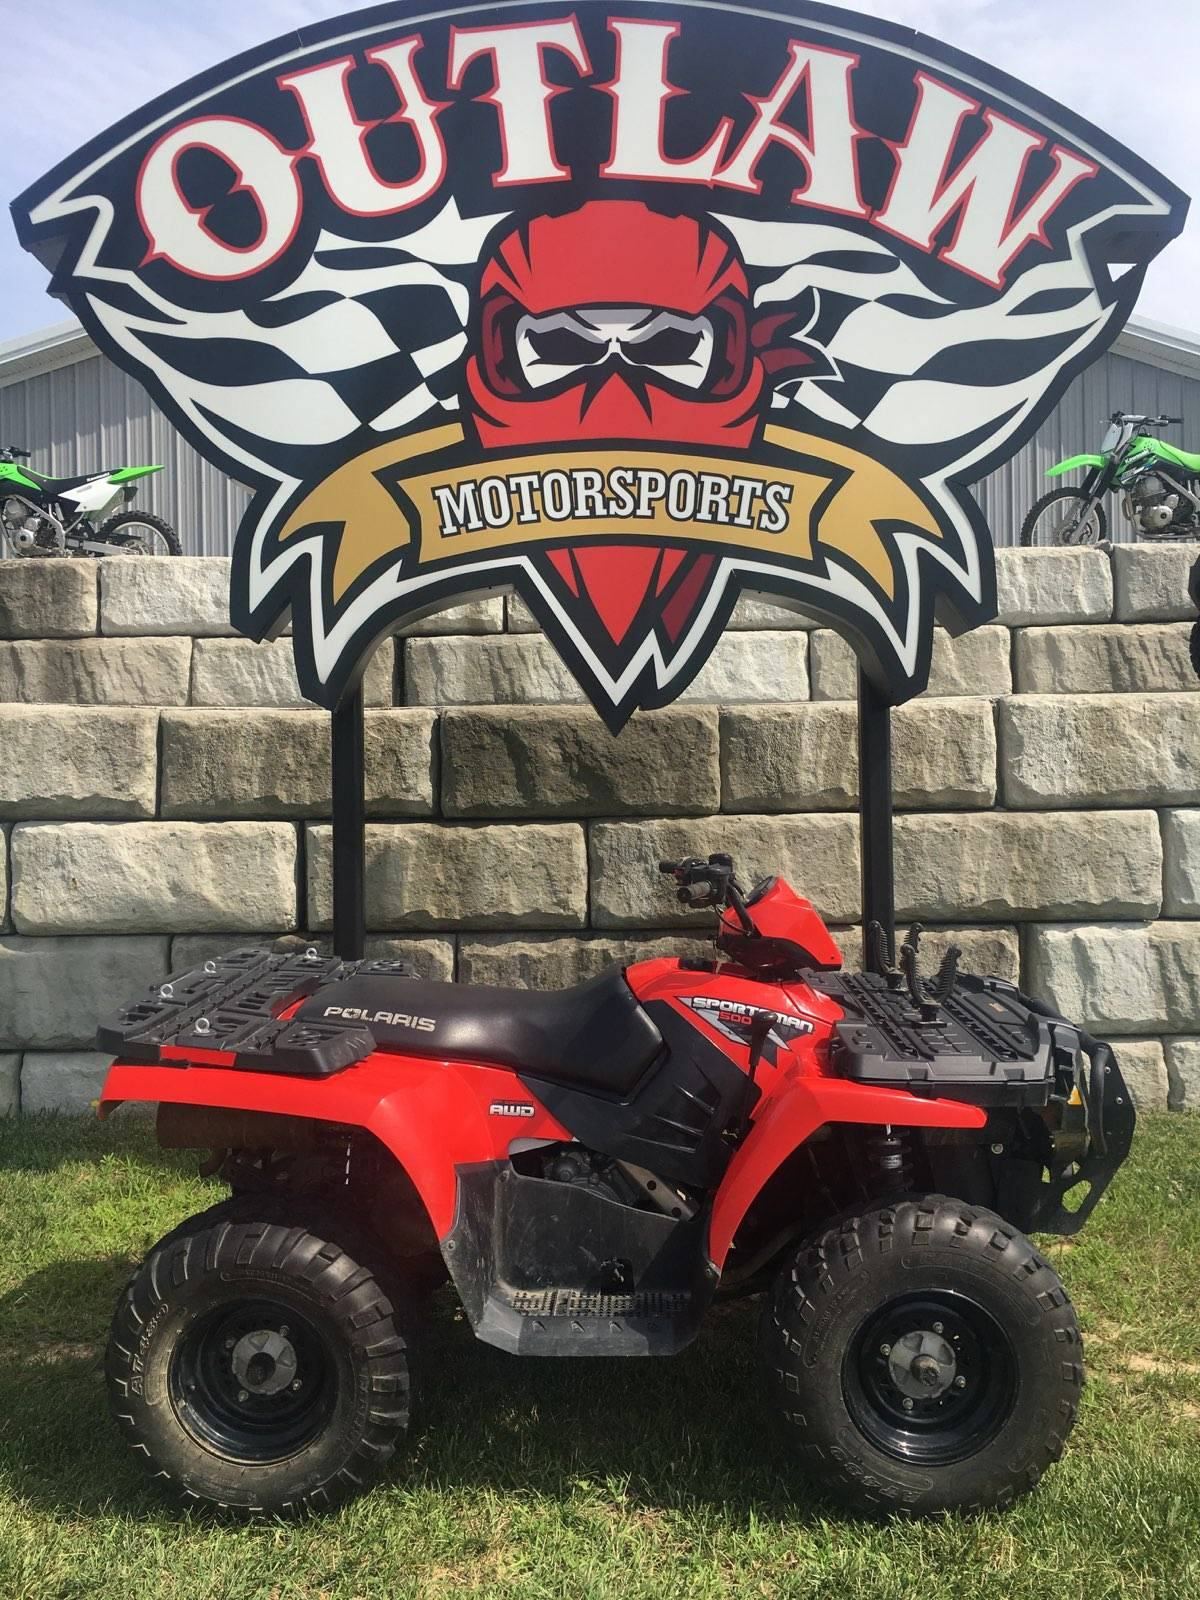 2010 Polaris SPORTSMAN 500 in Harrisburg, Illinois